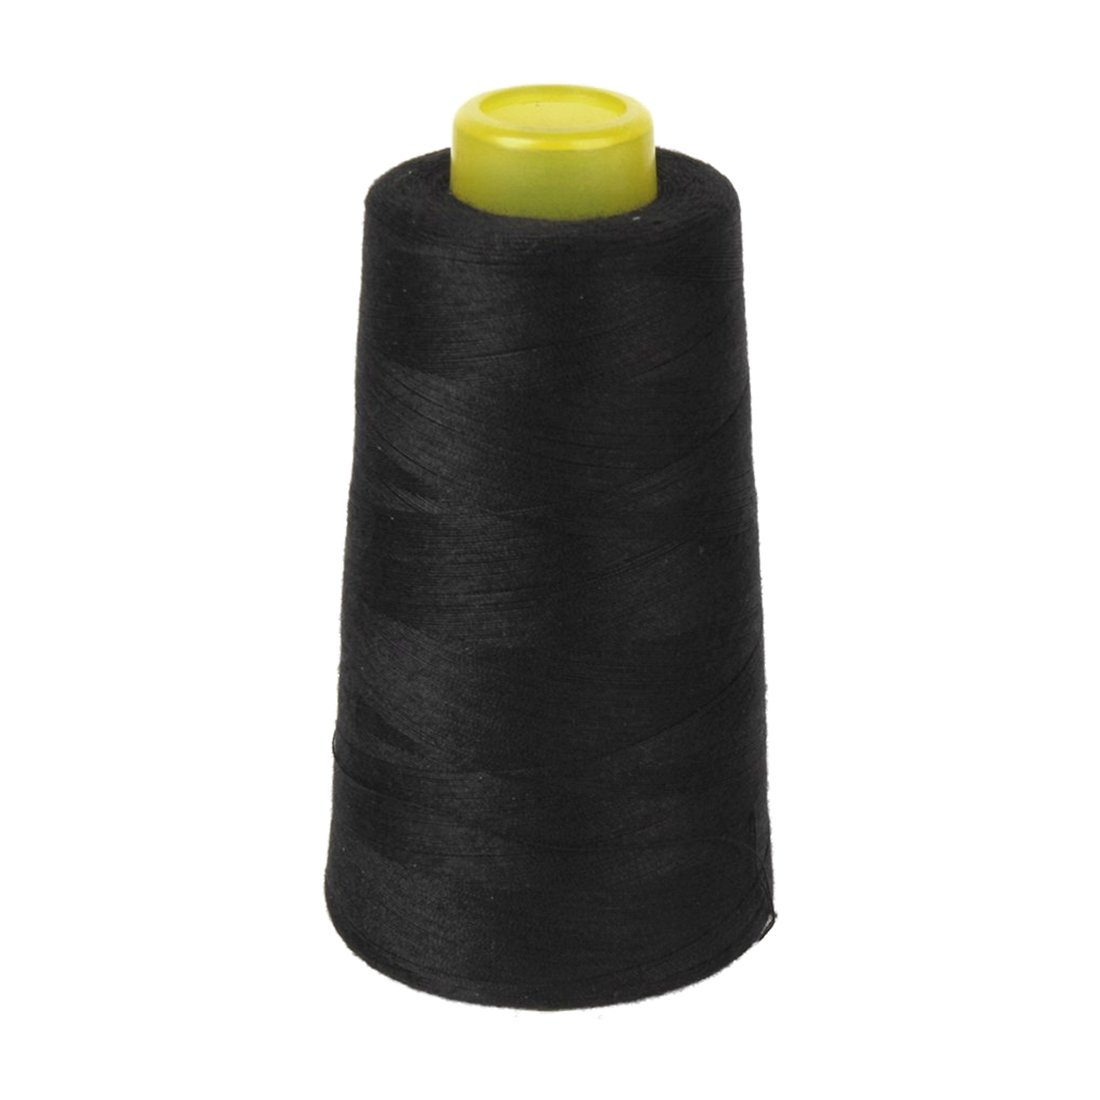 SODIAL Cotton Sewing Thread for Sewing Machine 40S / 2 Unbleached (Black)